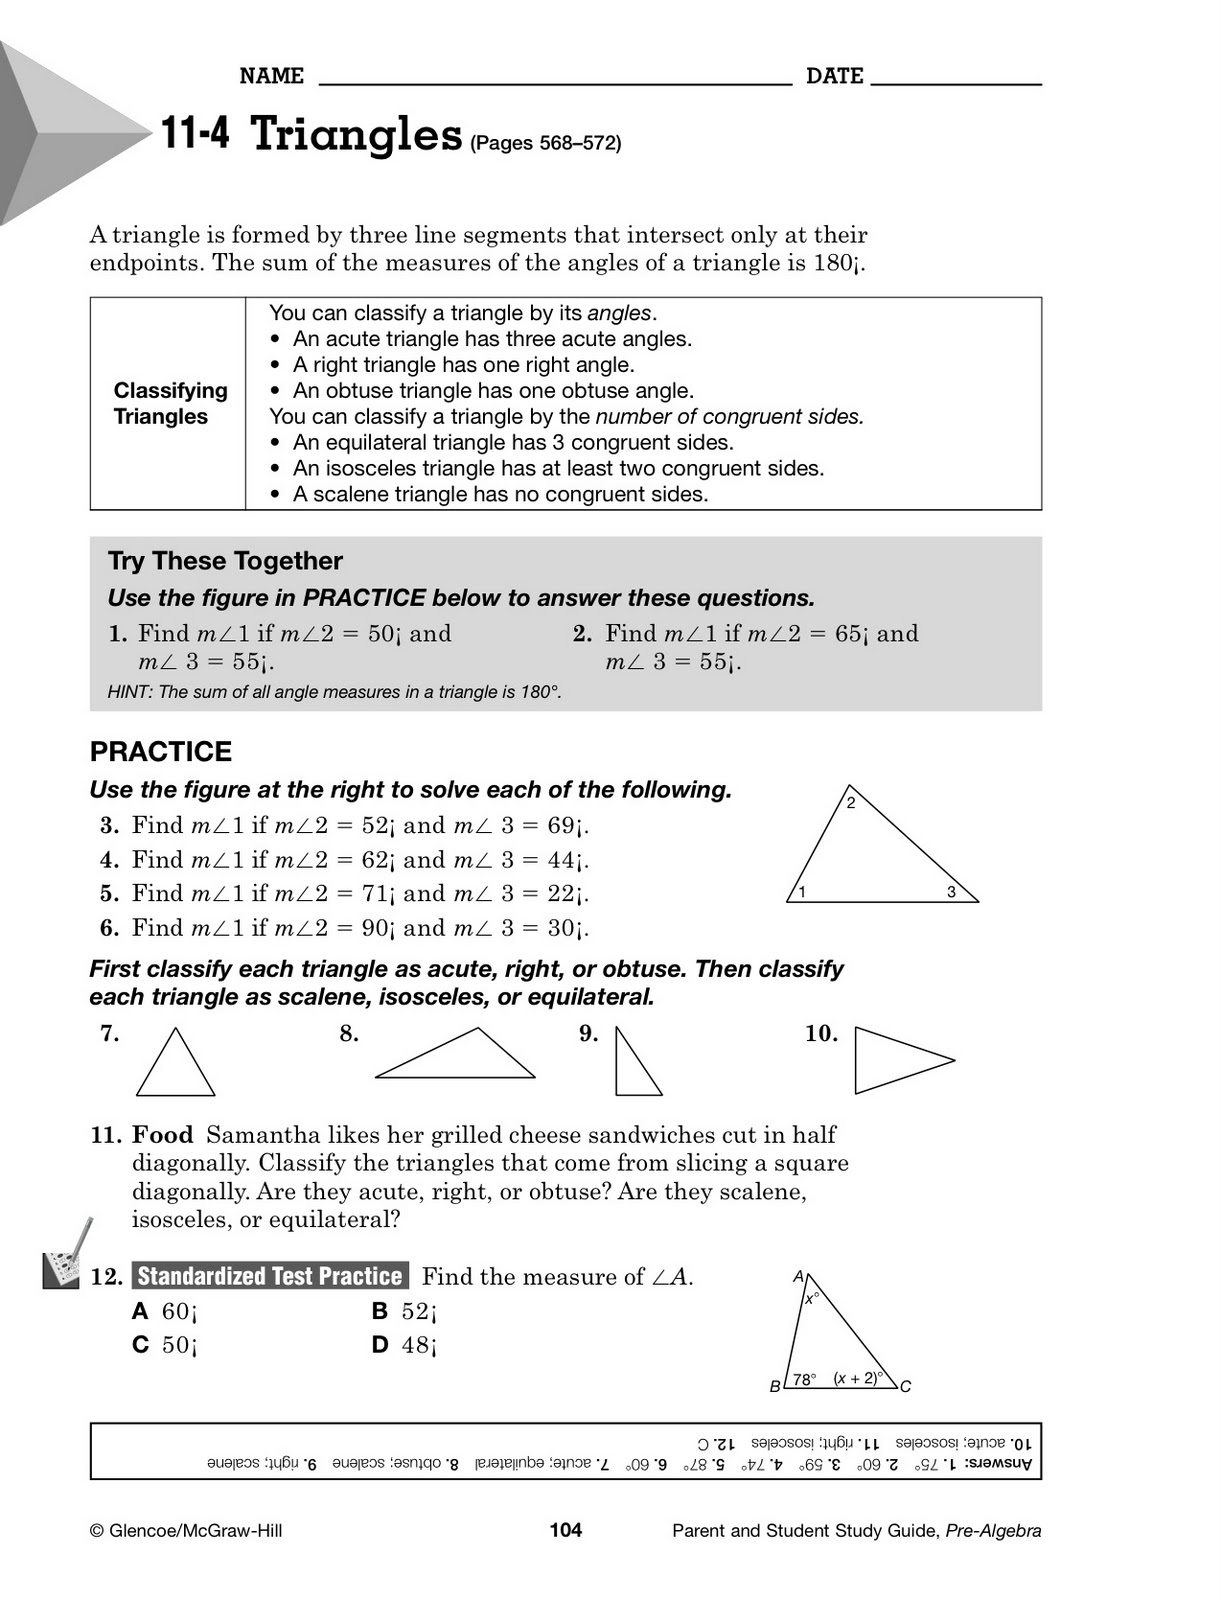 Glencoe Math Grade 8 Worksheets